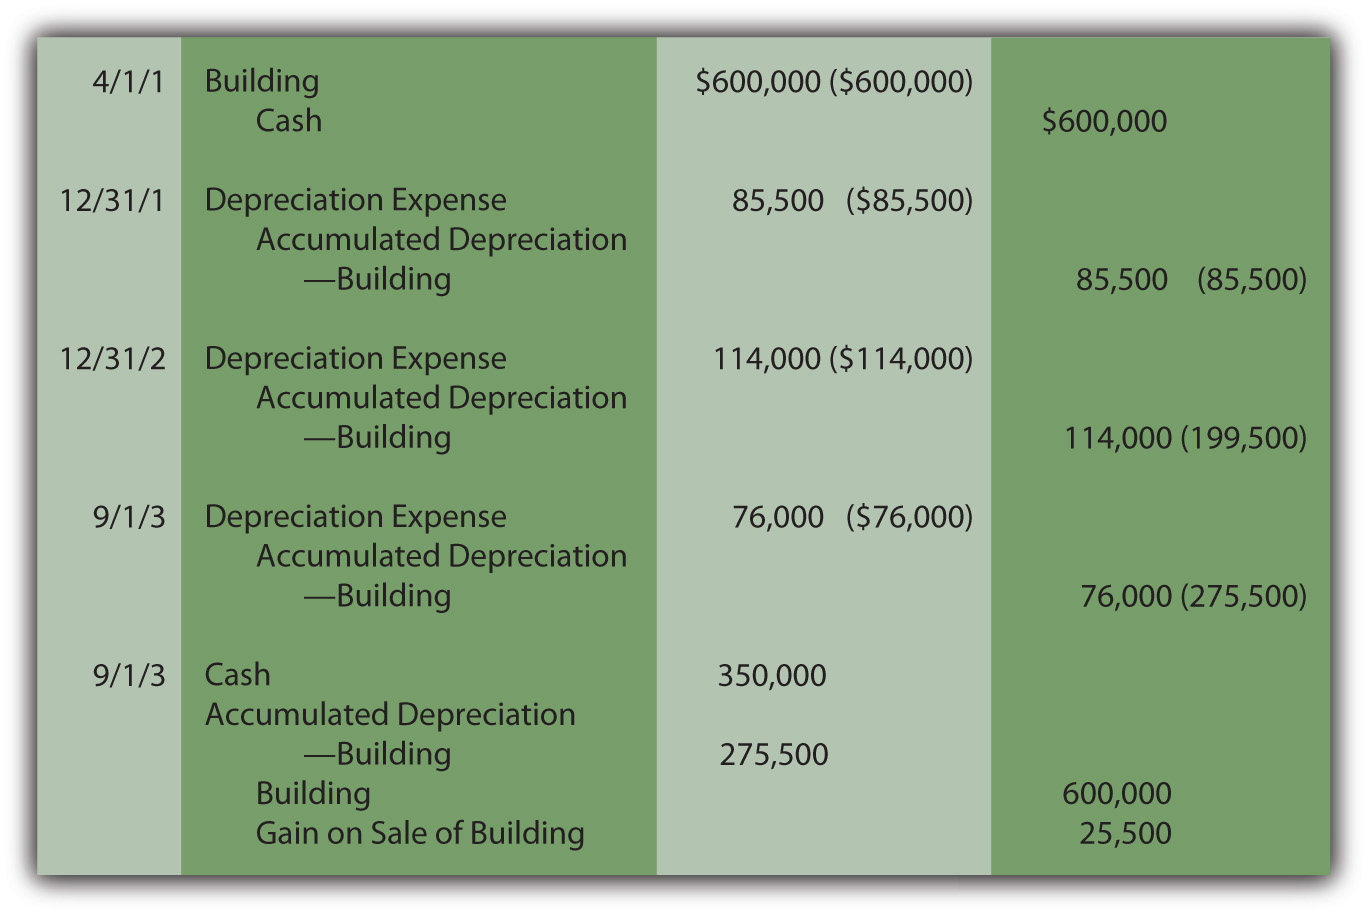 Acquisition, Depreciation, and Sale of Building